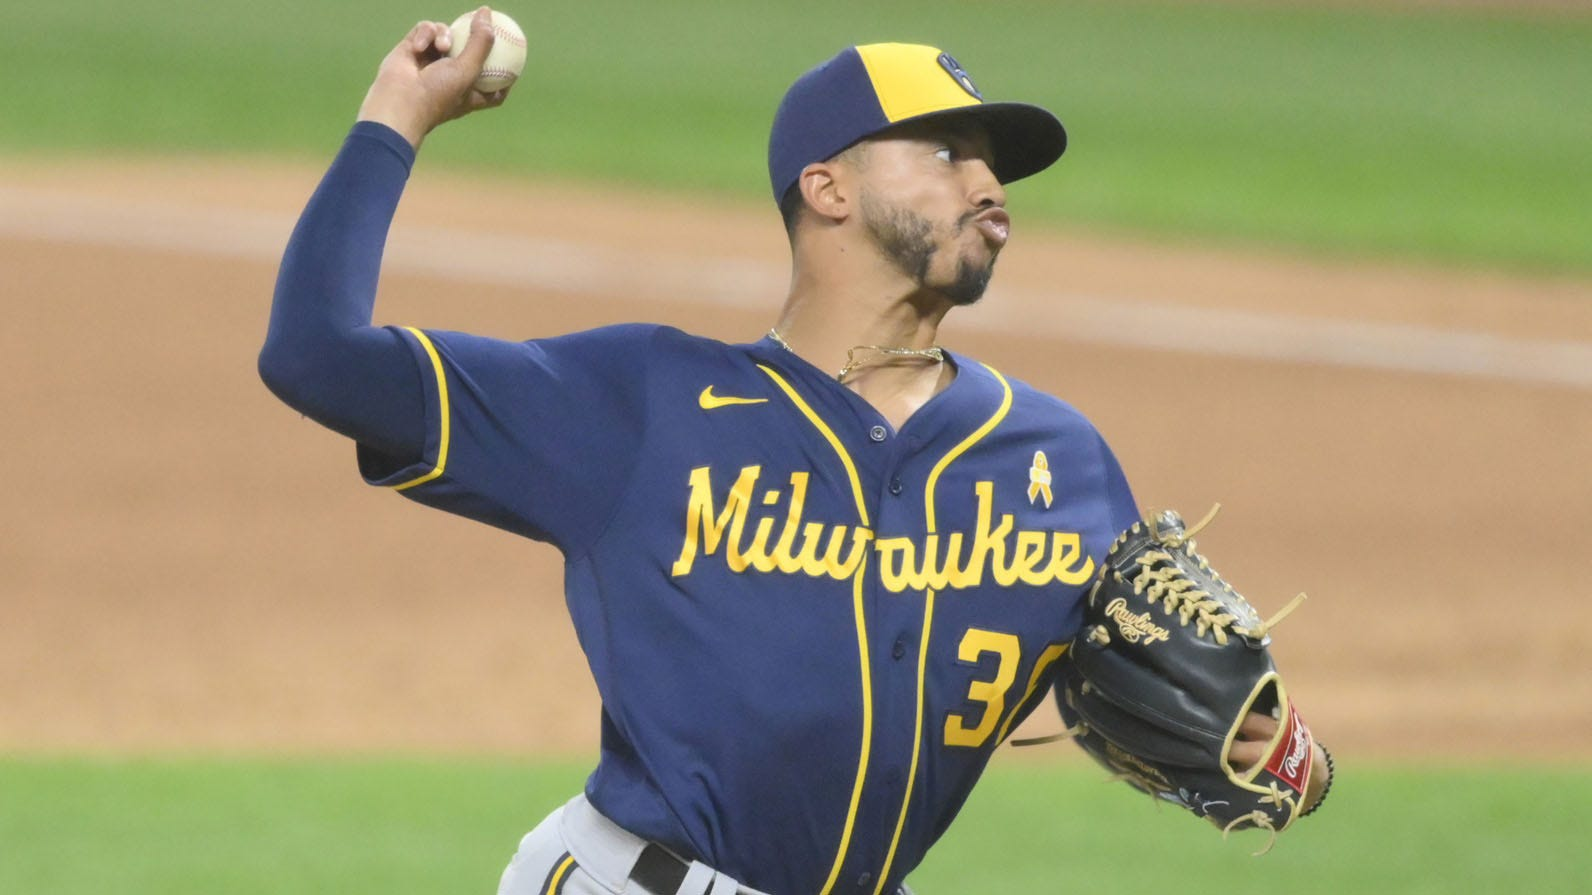 Changeup of Brewers' Williams continues to baffle hitters | FOX Sports